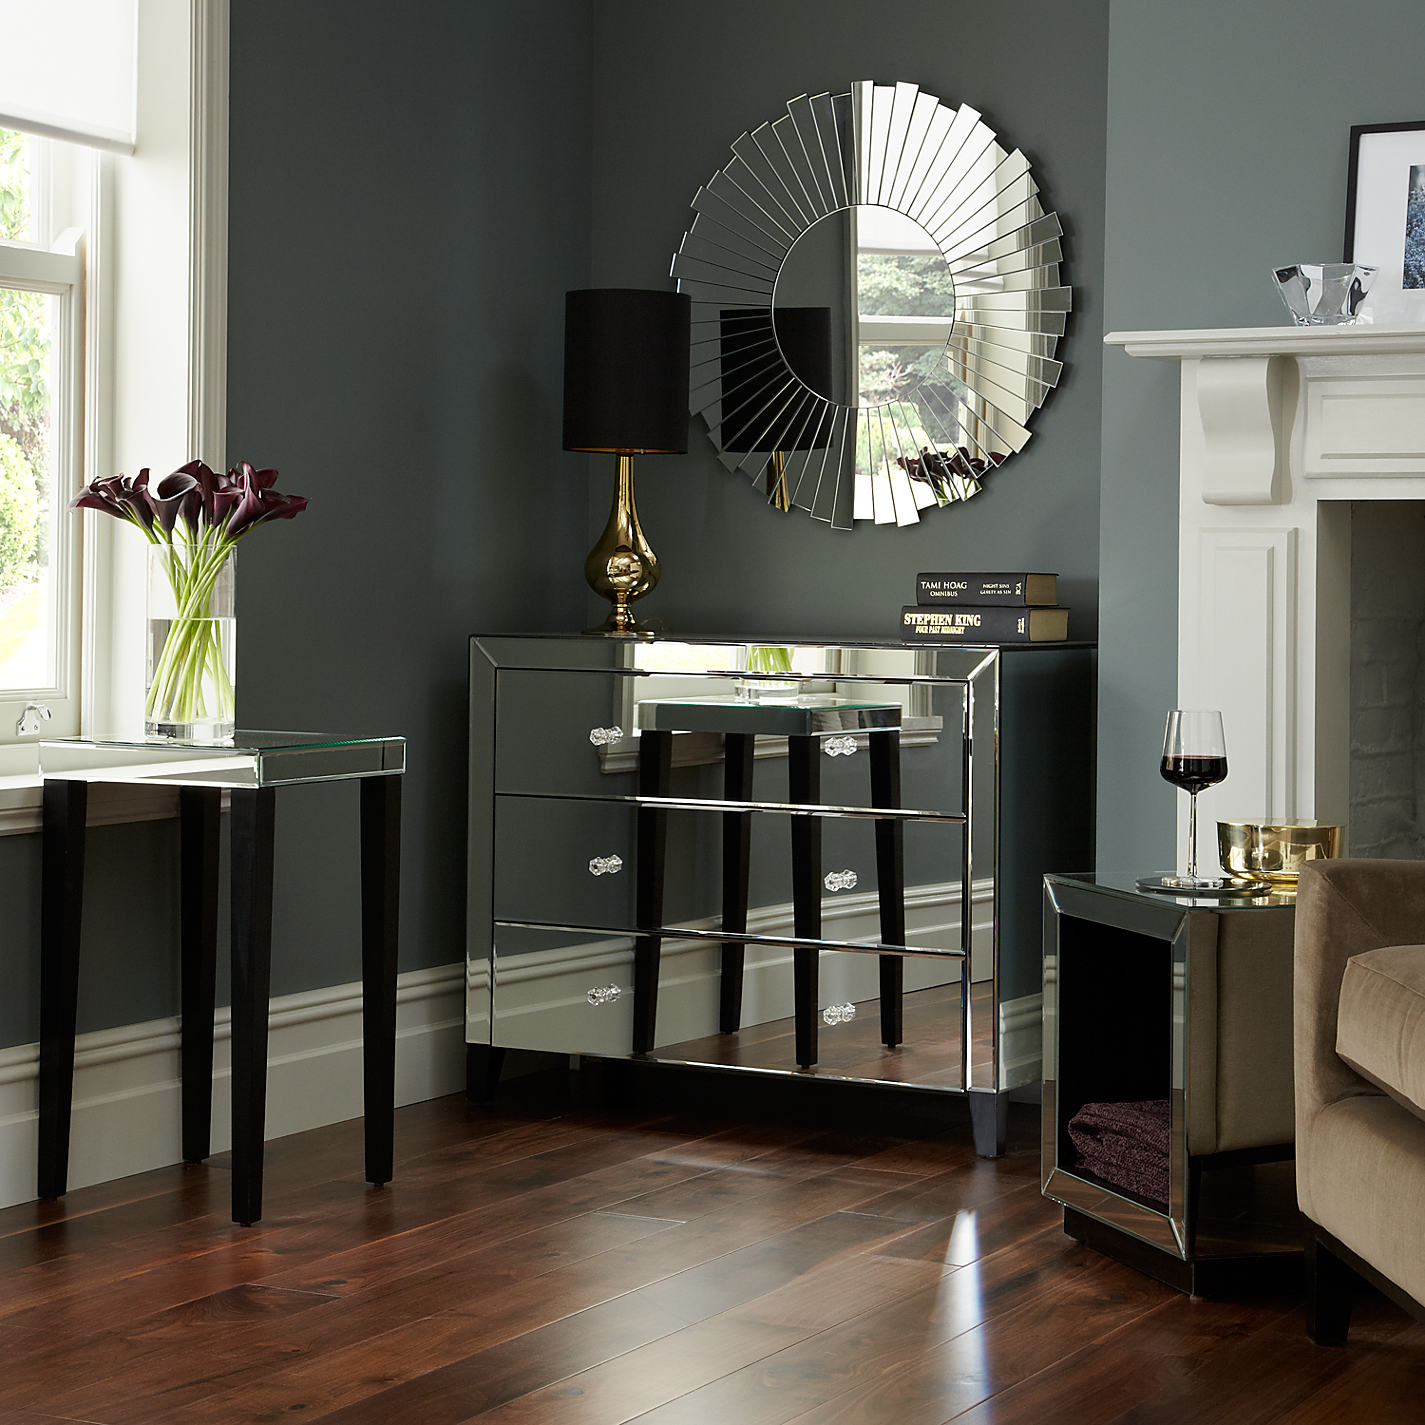 mirrored-chest-of-drawers-with-wooden-floor-and-fireplace-and-grey-wall-for-home-interior-design-ideas-metal-chest-of-drawers-mirrored-chest-of-drawers-white-dresser-ikea-ikea-clothes-storage-corner-d